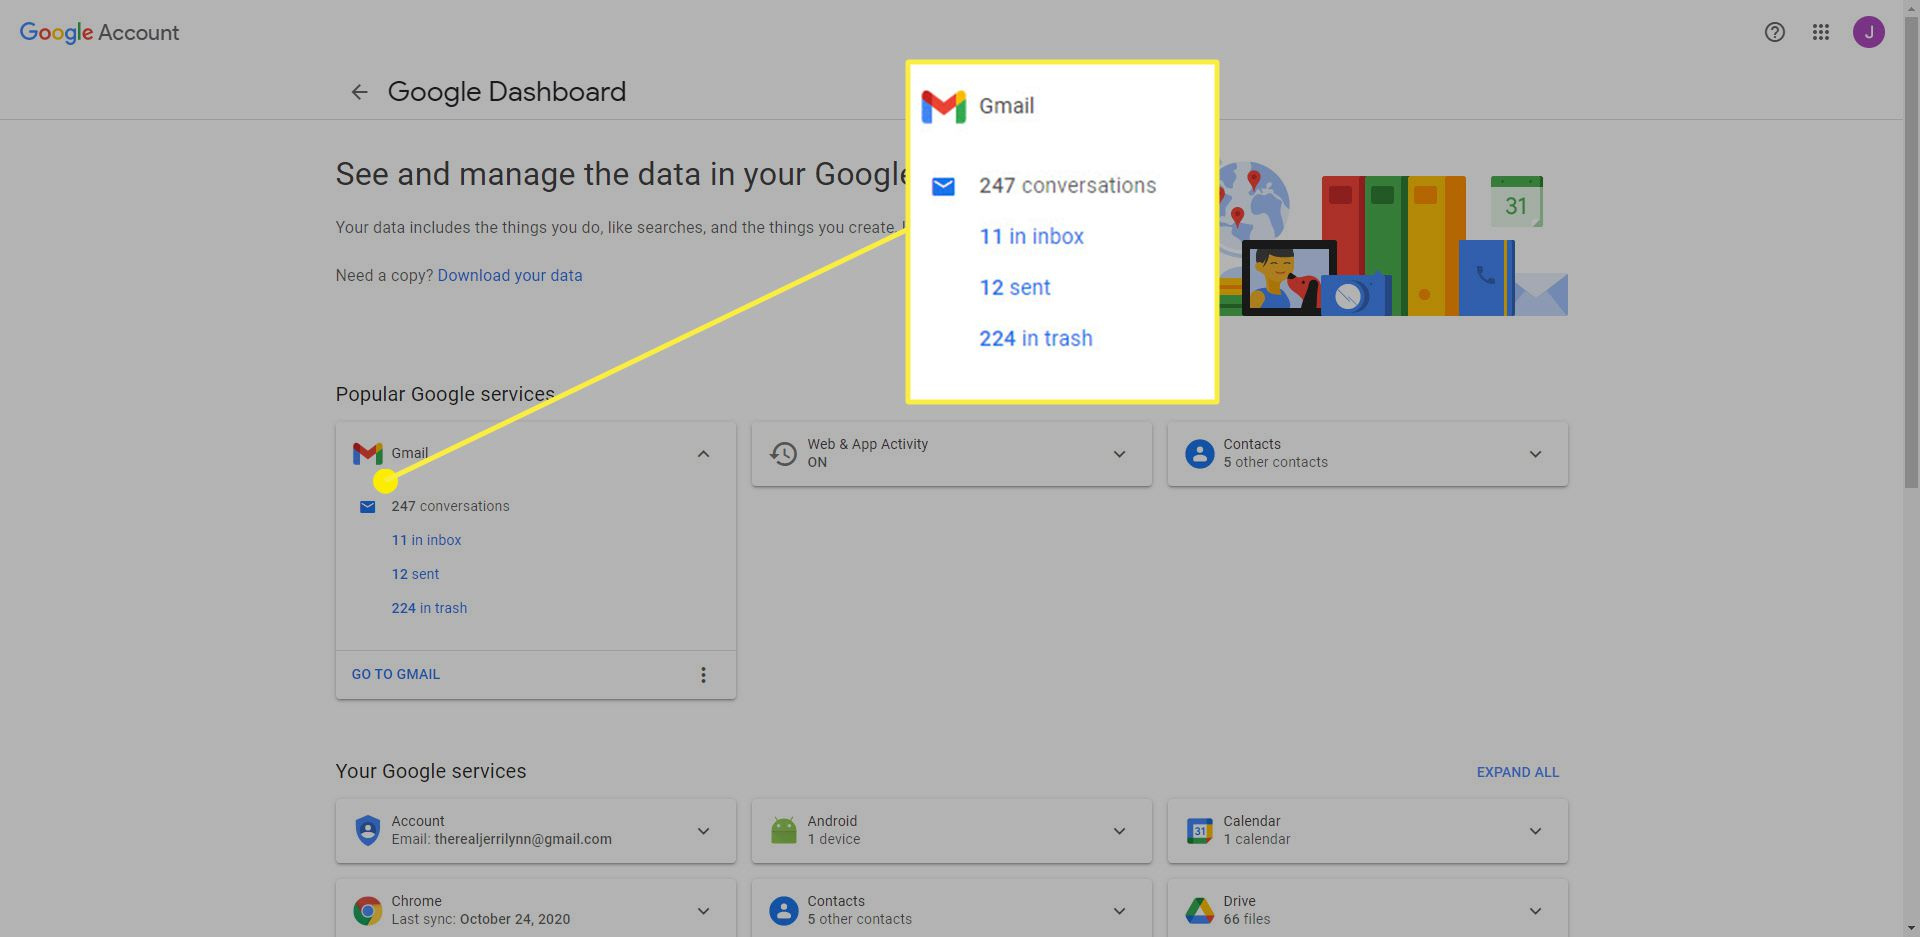 Google Services with the Gmail information highlighted